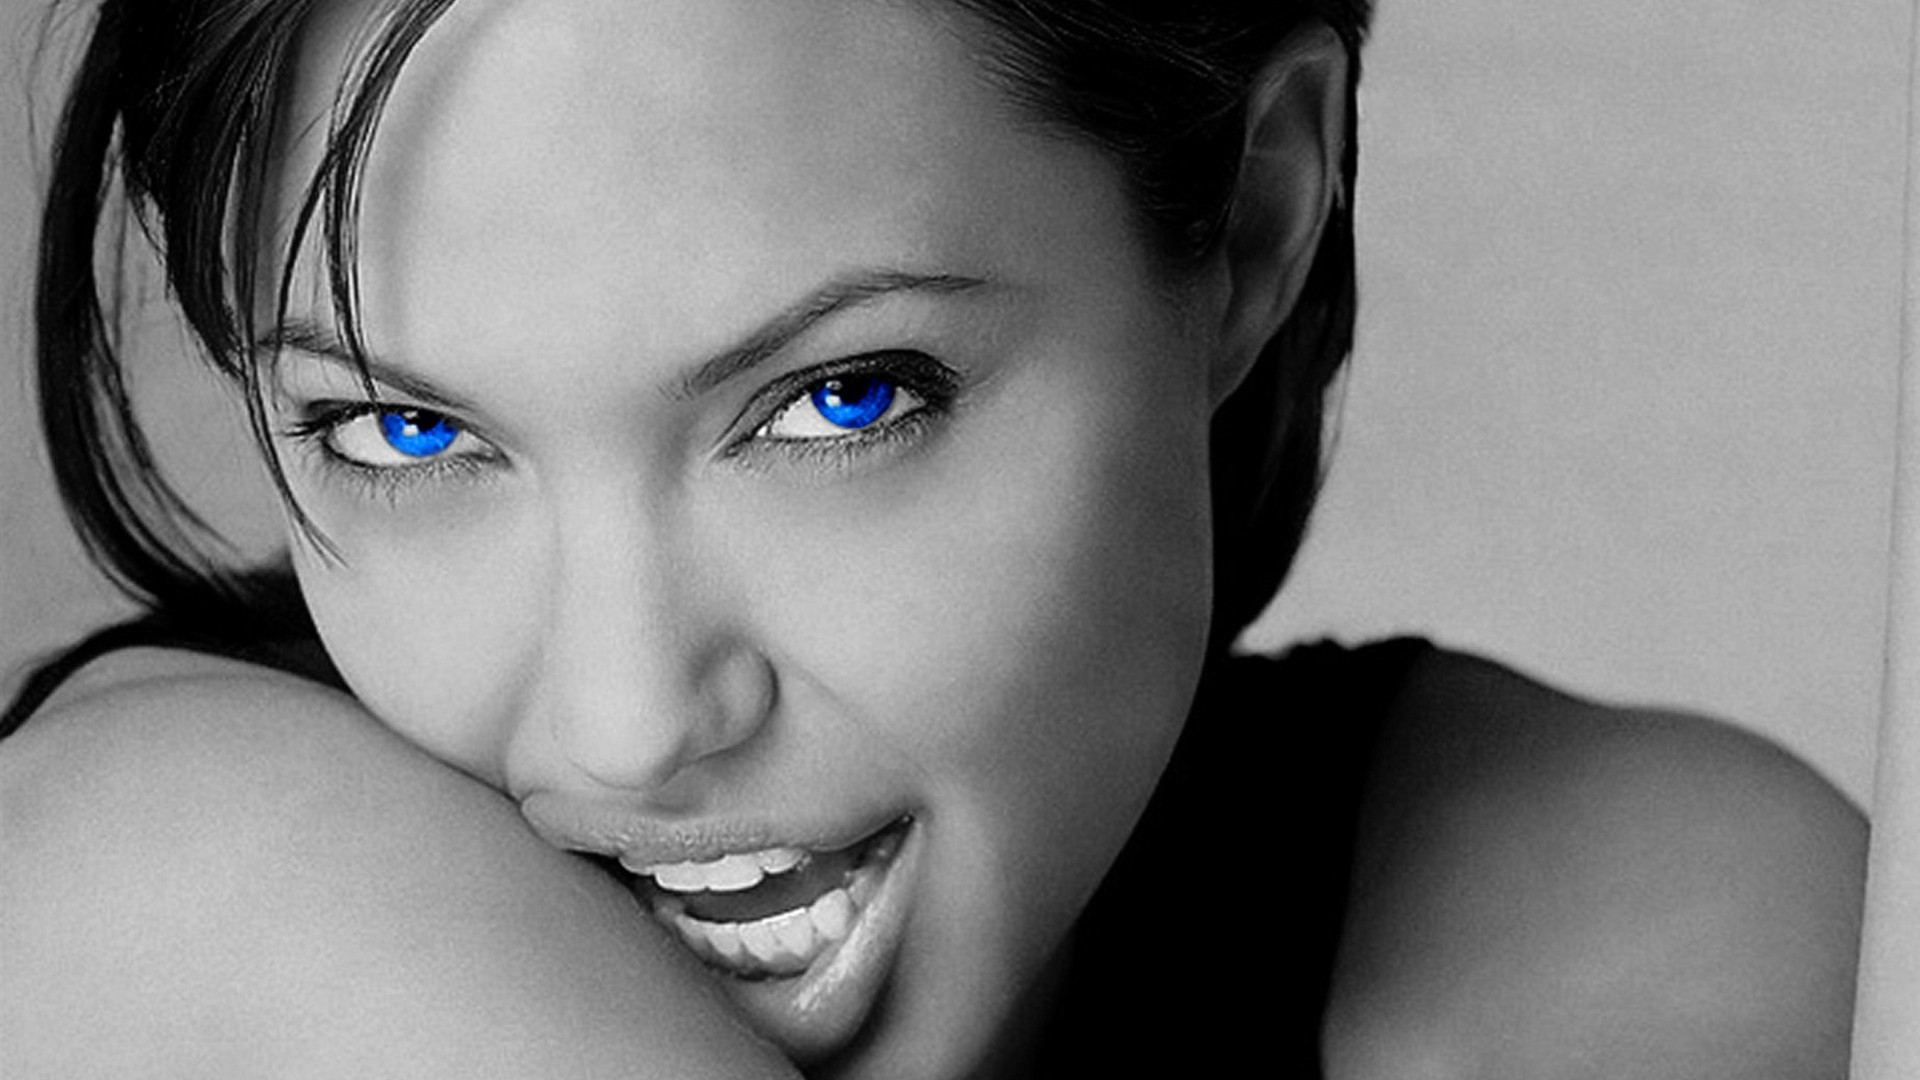 Angelina Jolie Blue Eyes HD Wallpaper 2414 Wallpaper computer best 1920x1080